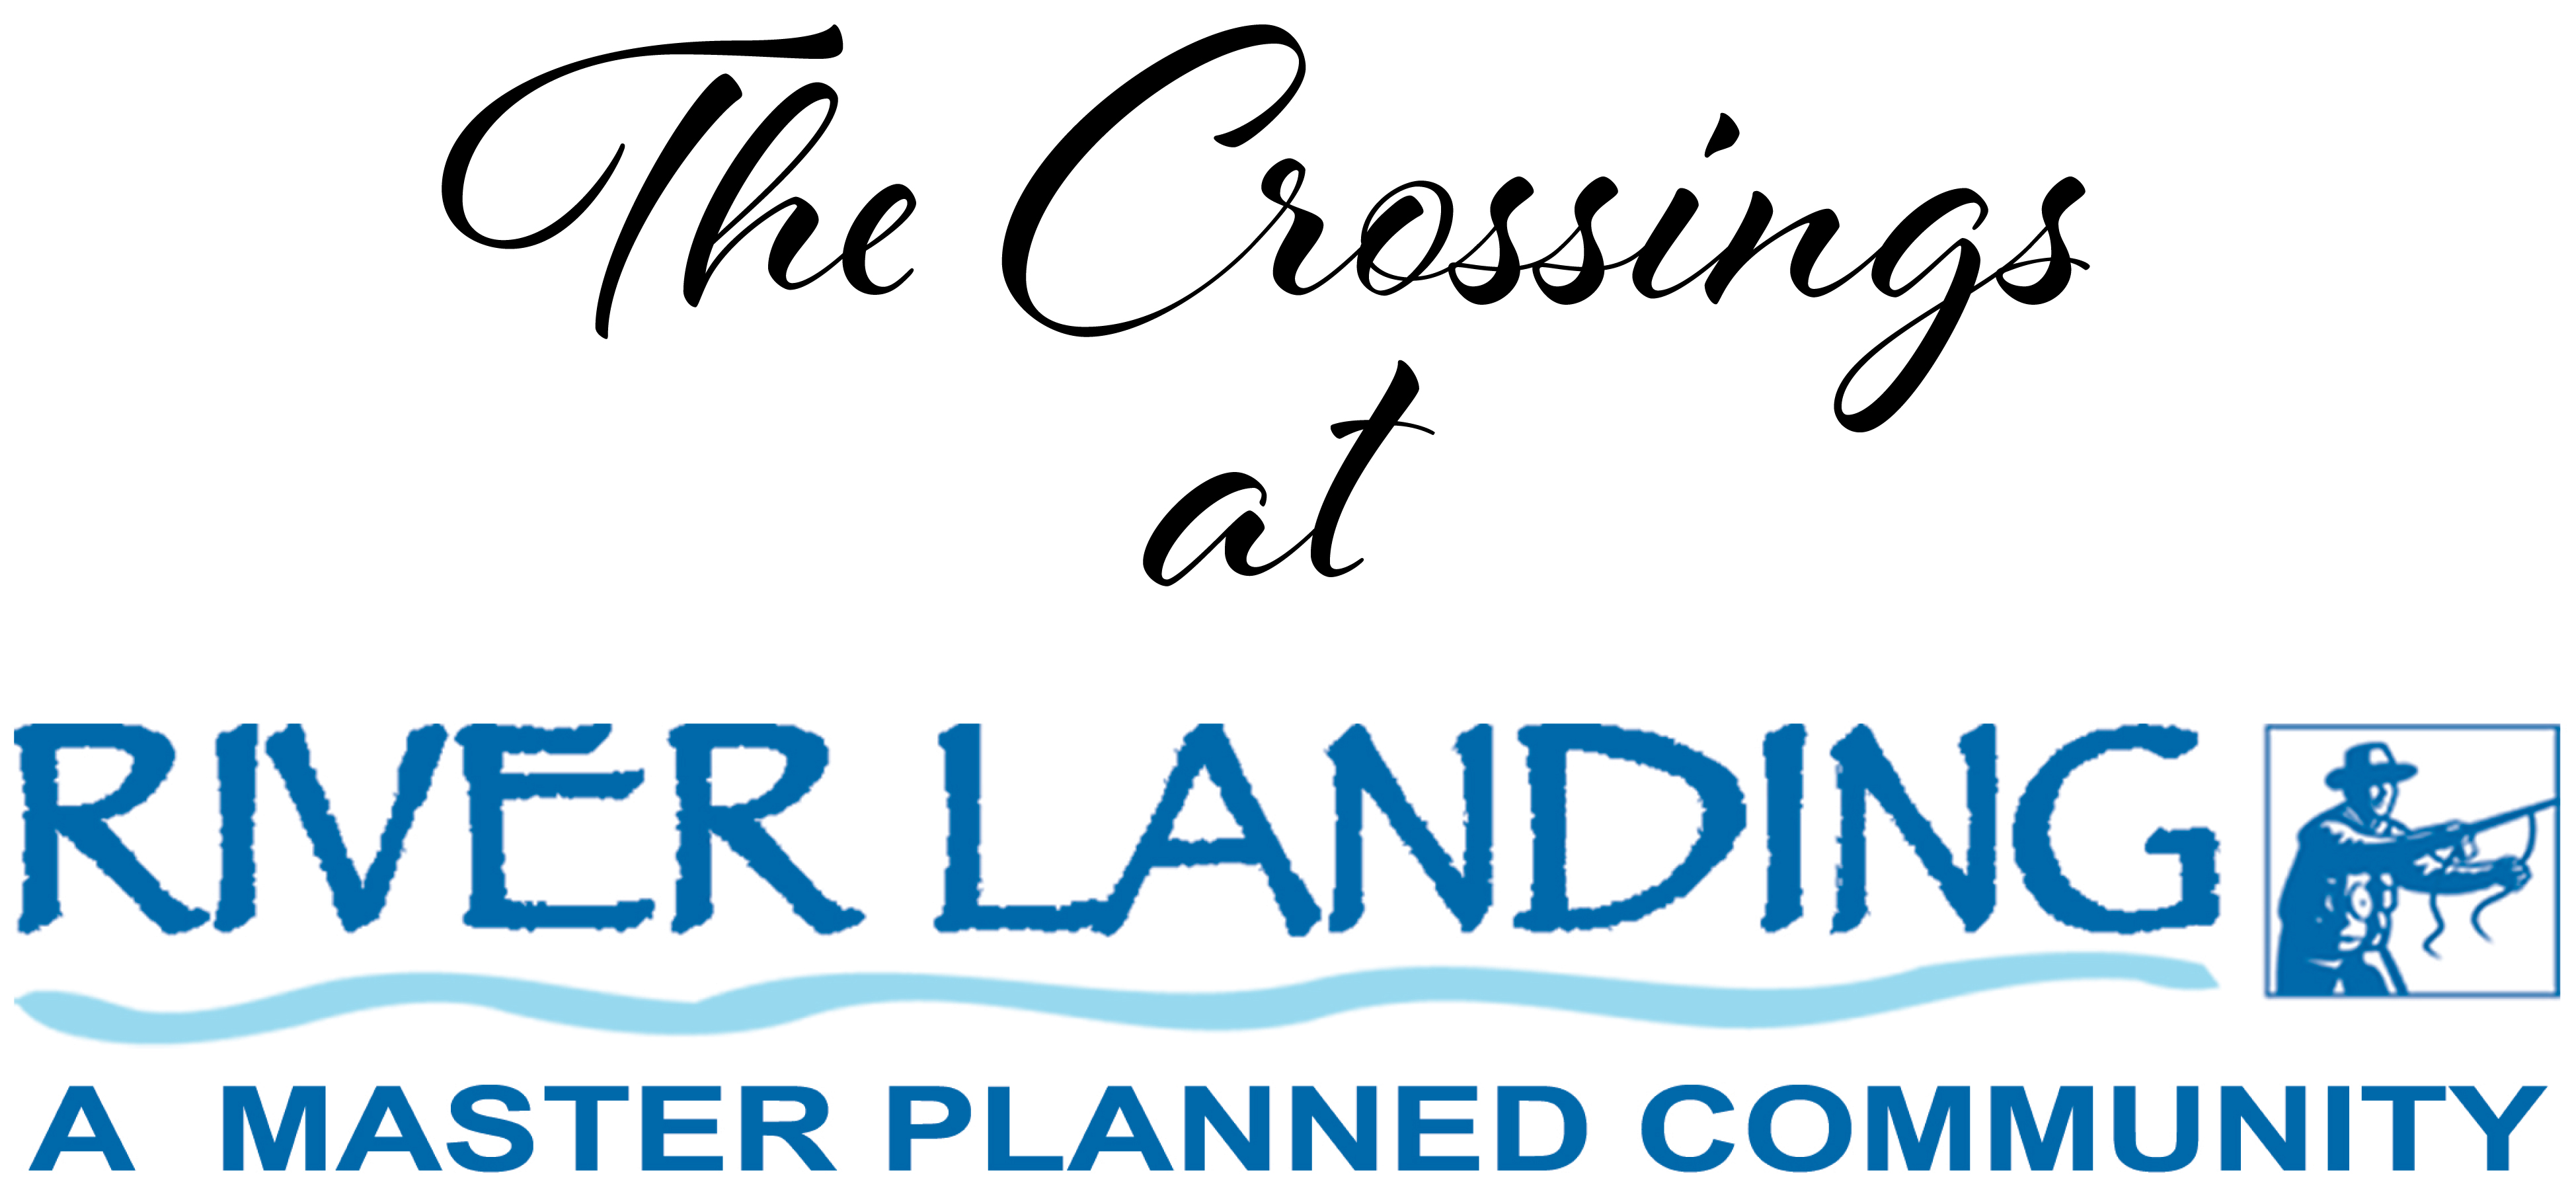 the crossings logo lg